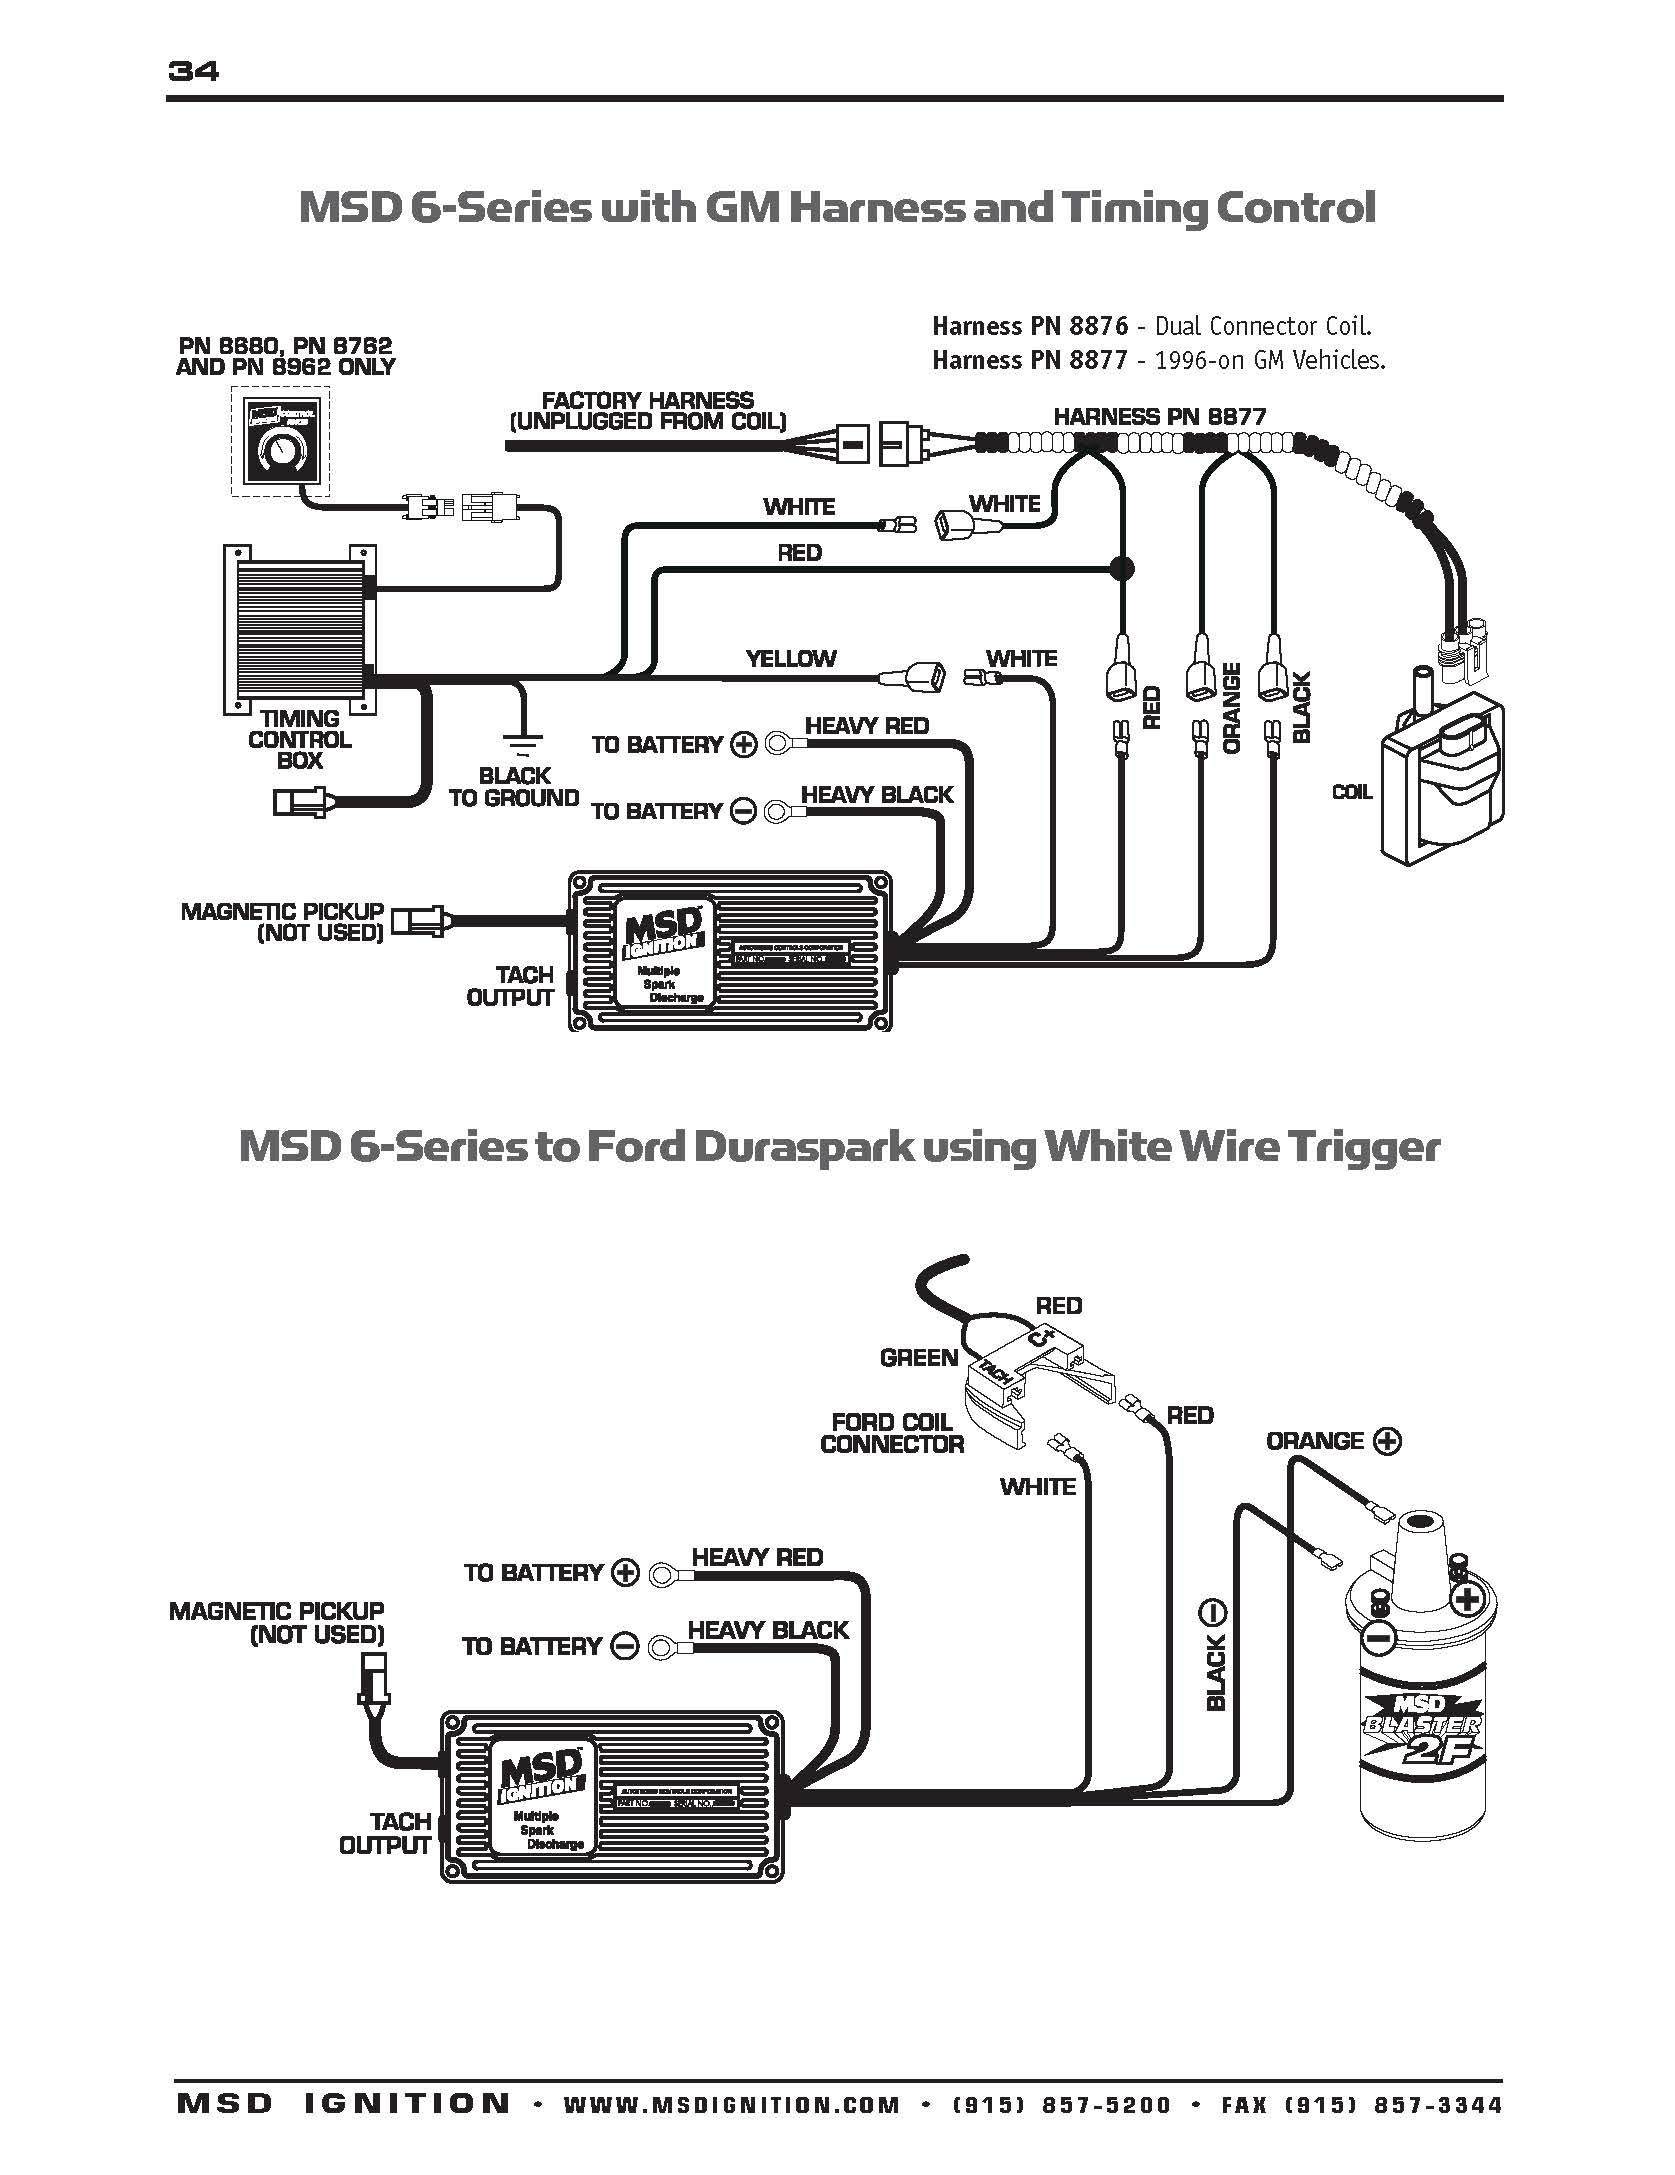 hight resolution of msd distributor wiring harness diagram wiring diagram article review